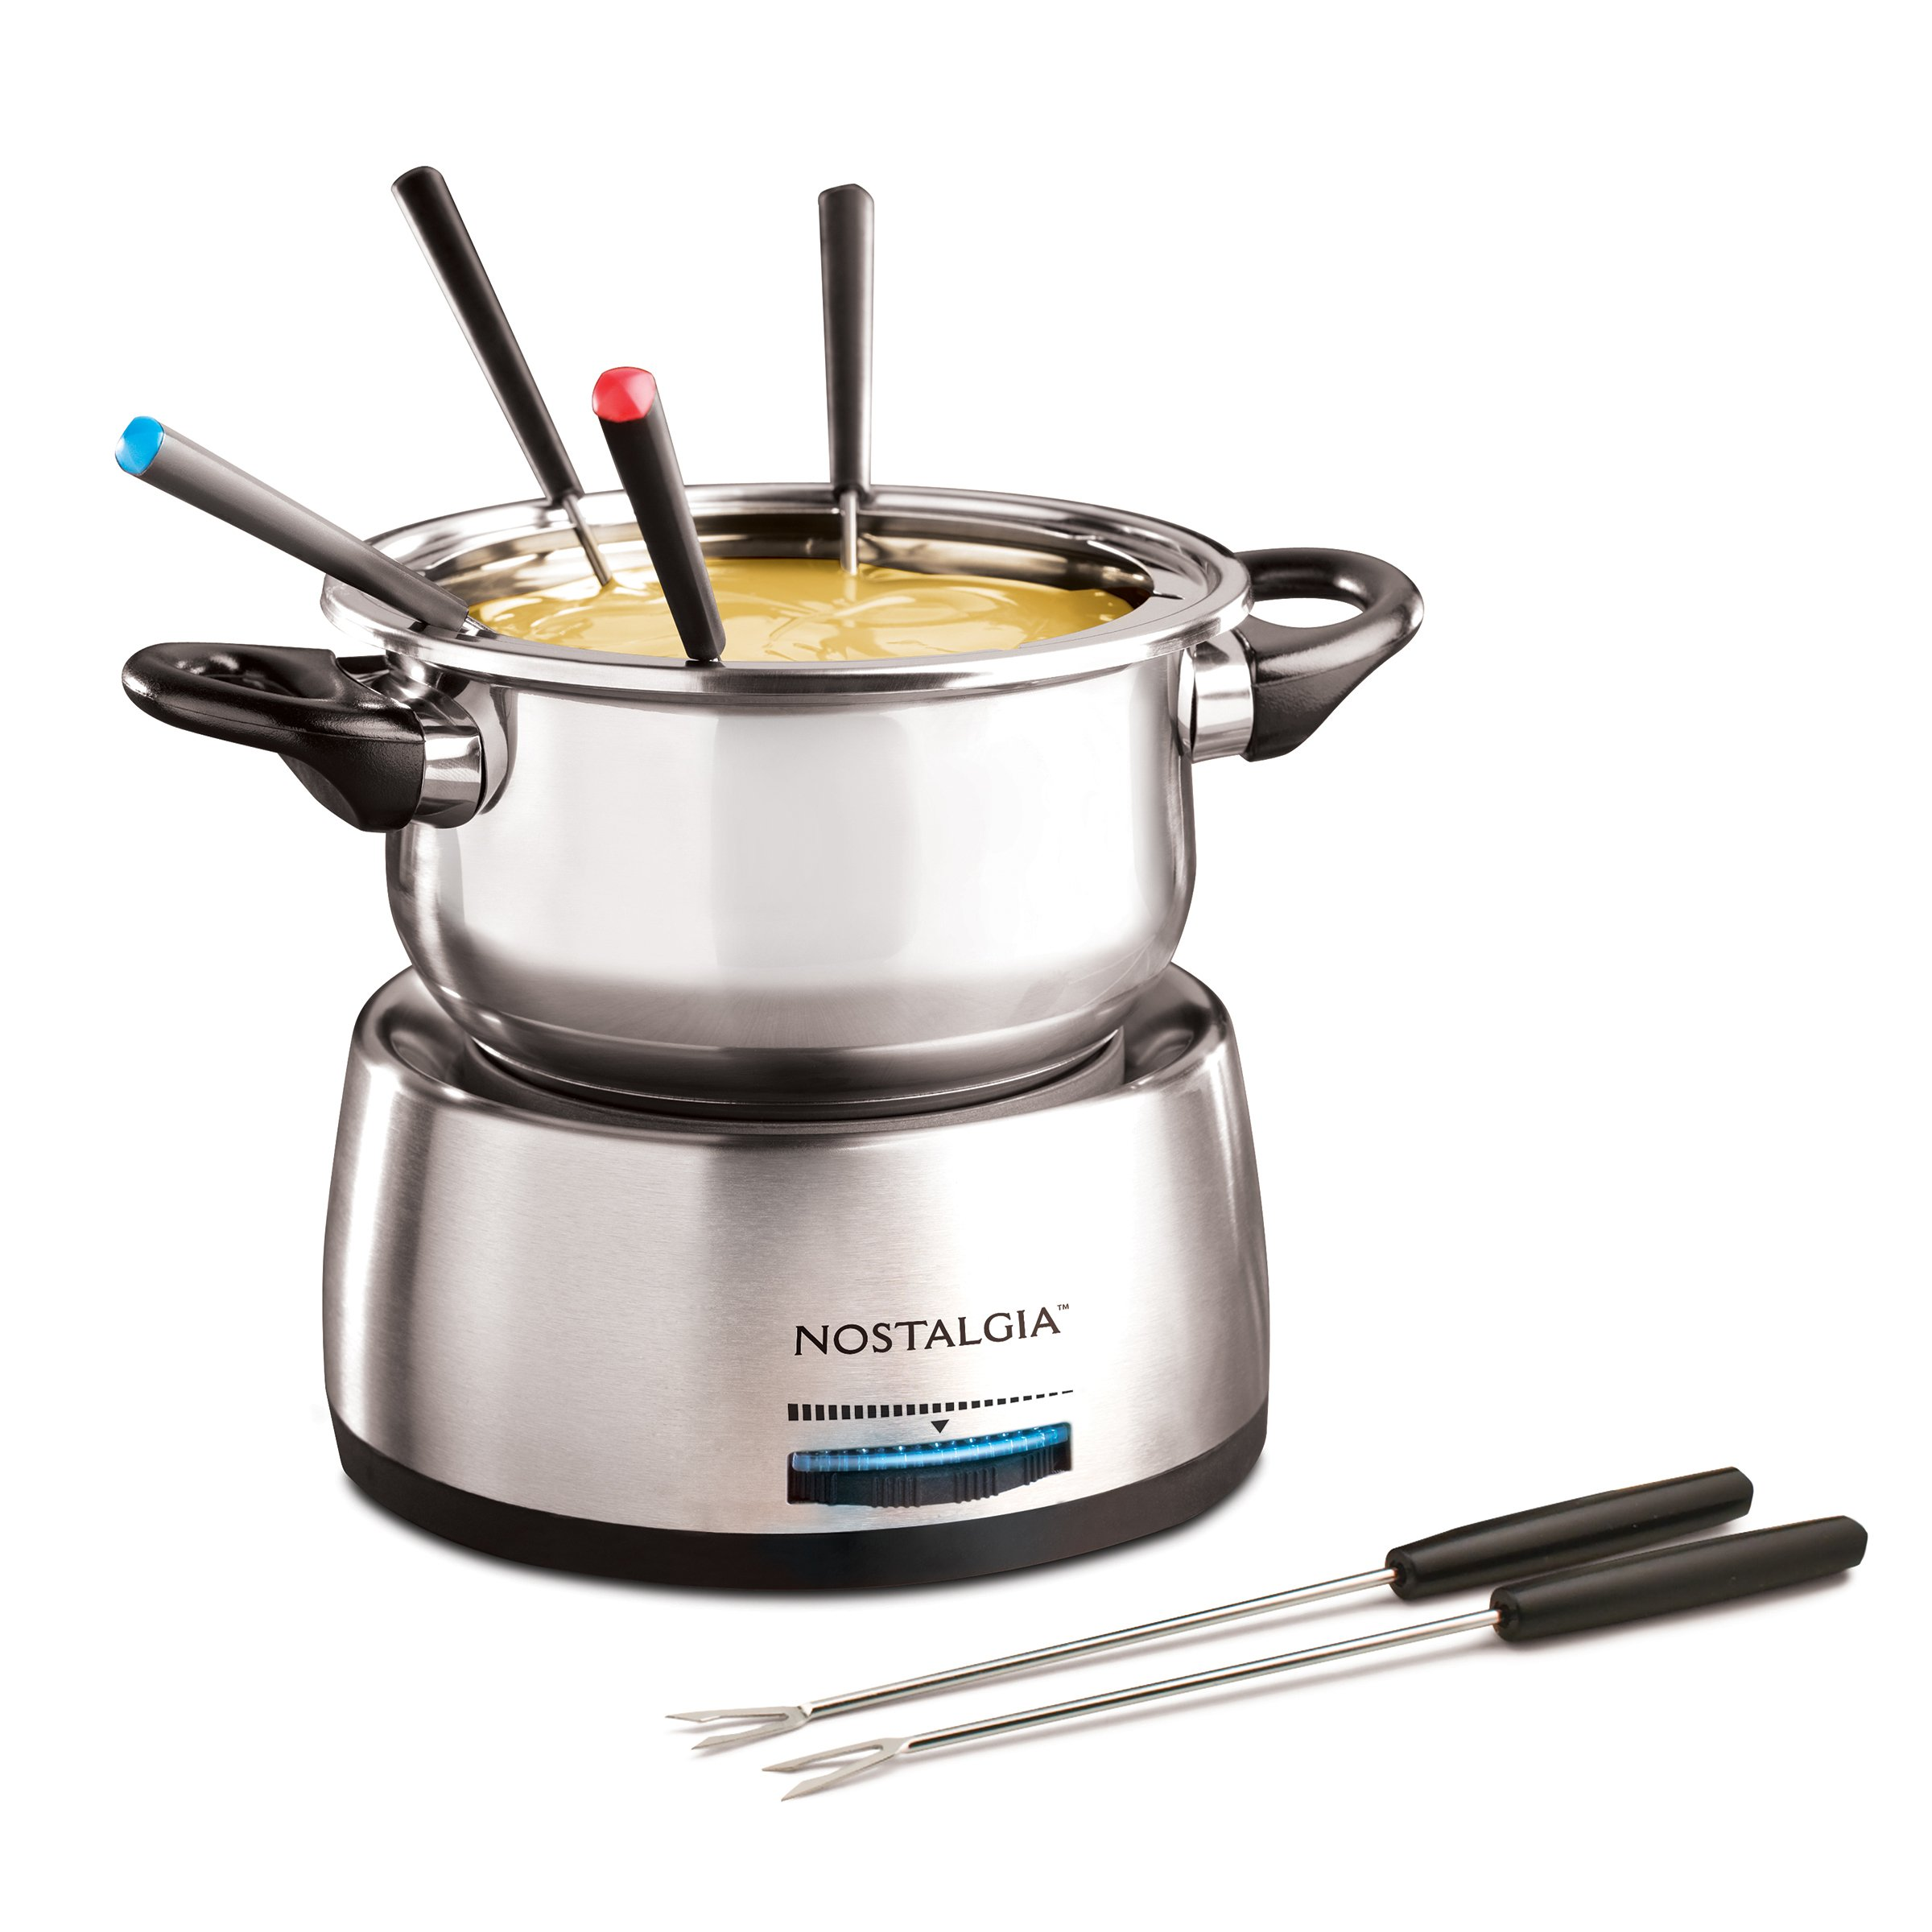 Galleon nostalgia fps200 6 cup stainless steel electric fondue pot for Kitchen set toys r us philippines